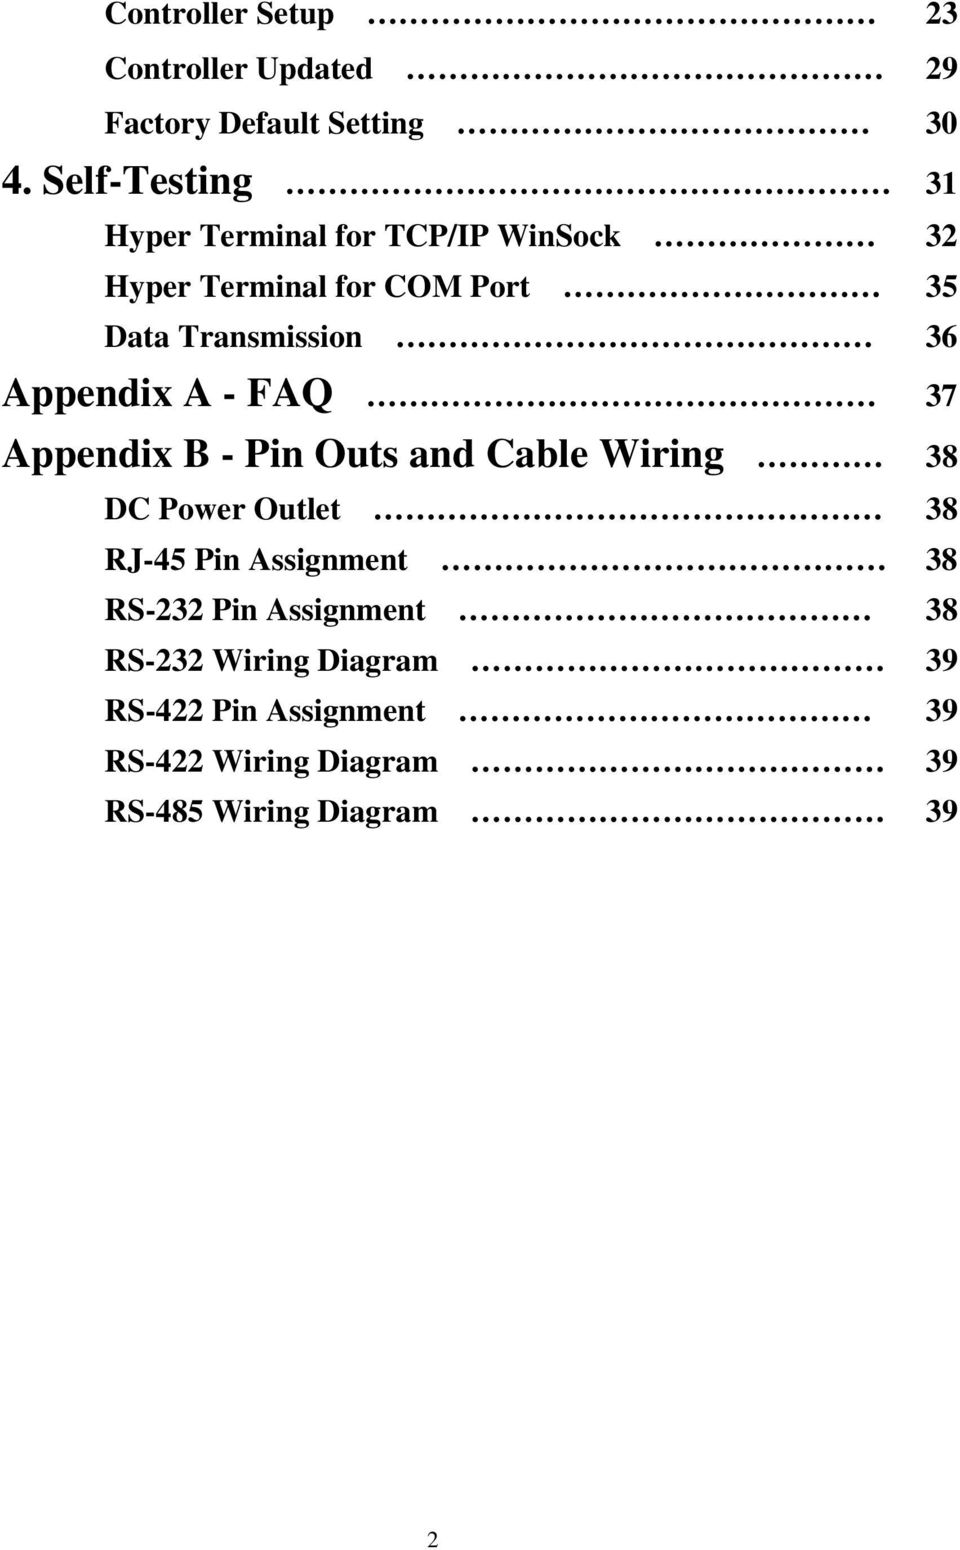 36 Appendix A - FAQ 37 Appendix B - Pin Outs and Cable Wiring 38 DC Power Outlet 38 RJ-45 Pin